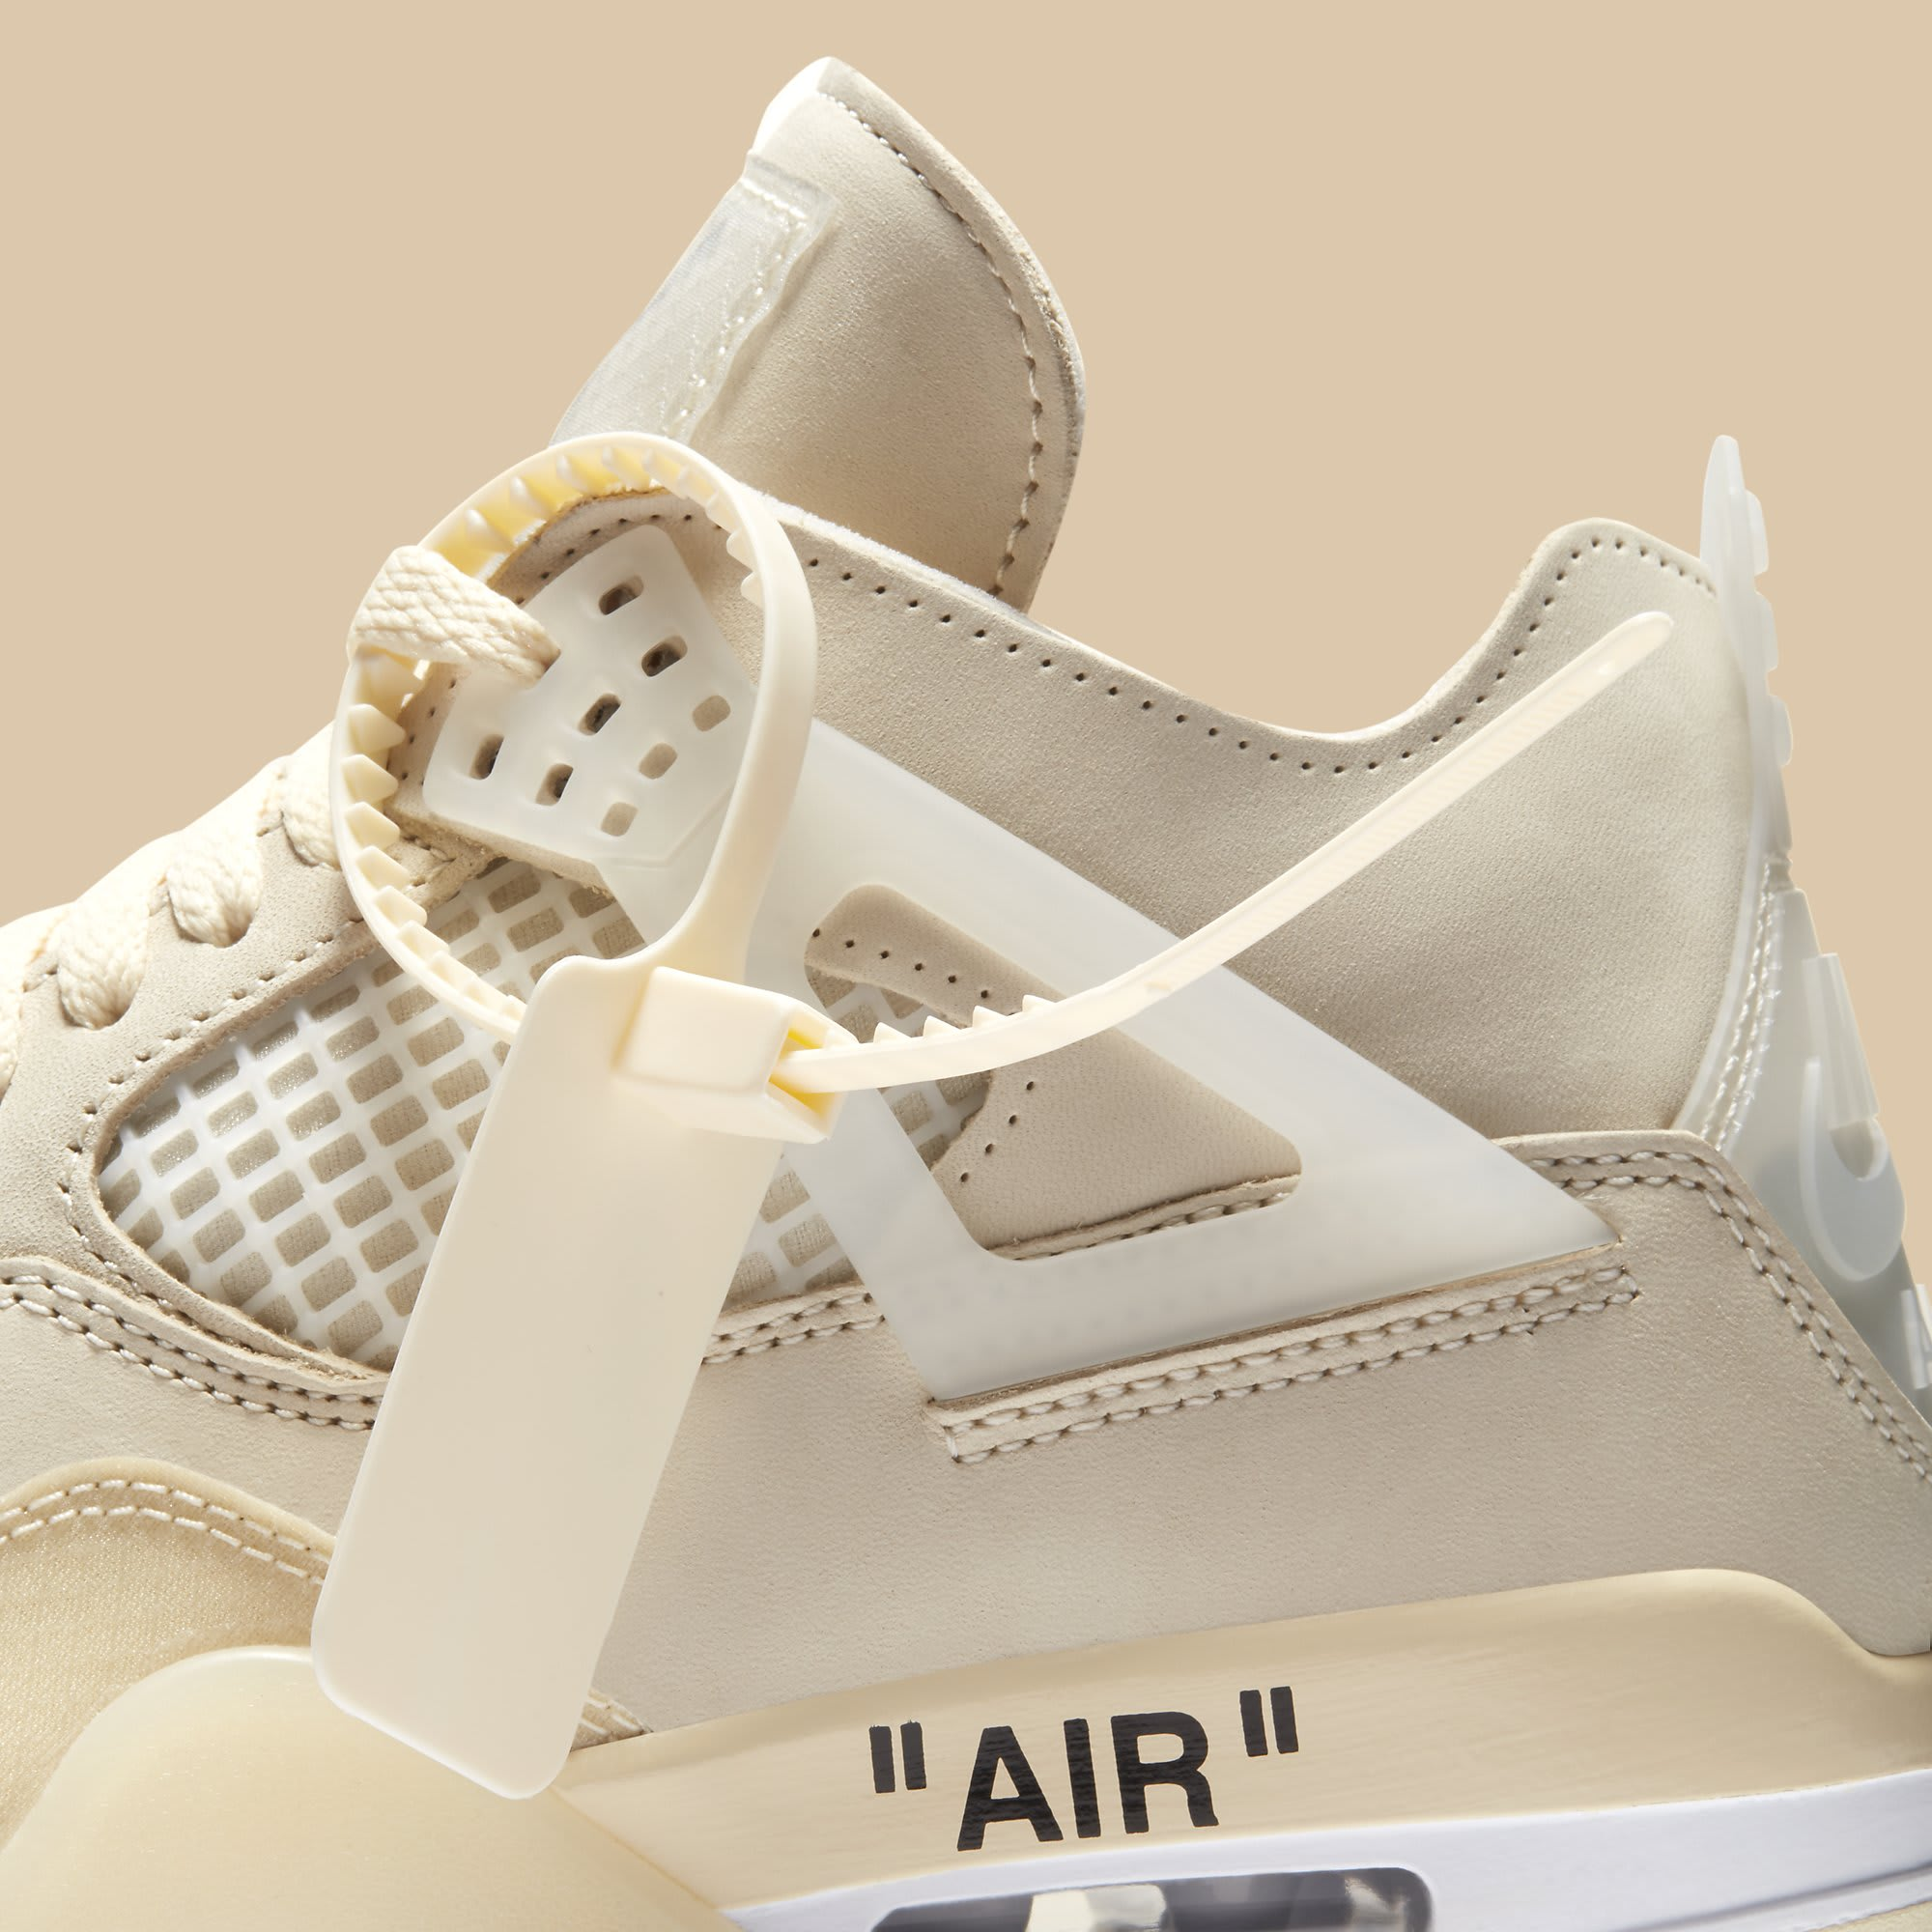 Off-White x Air Jordan 4 Sail Release Date CV9388-100 Zip Tie